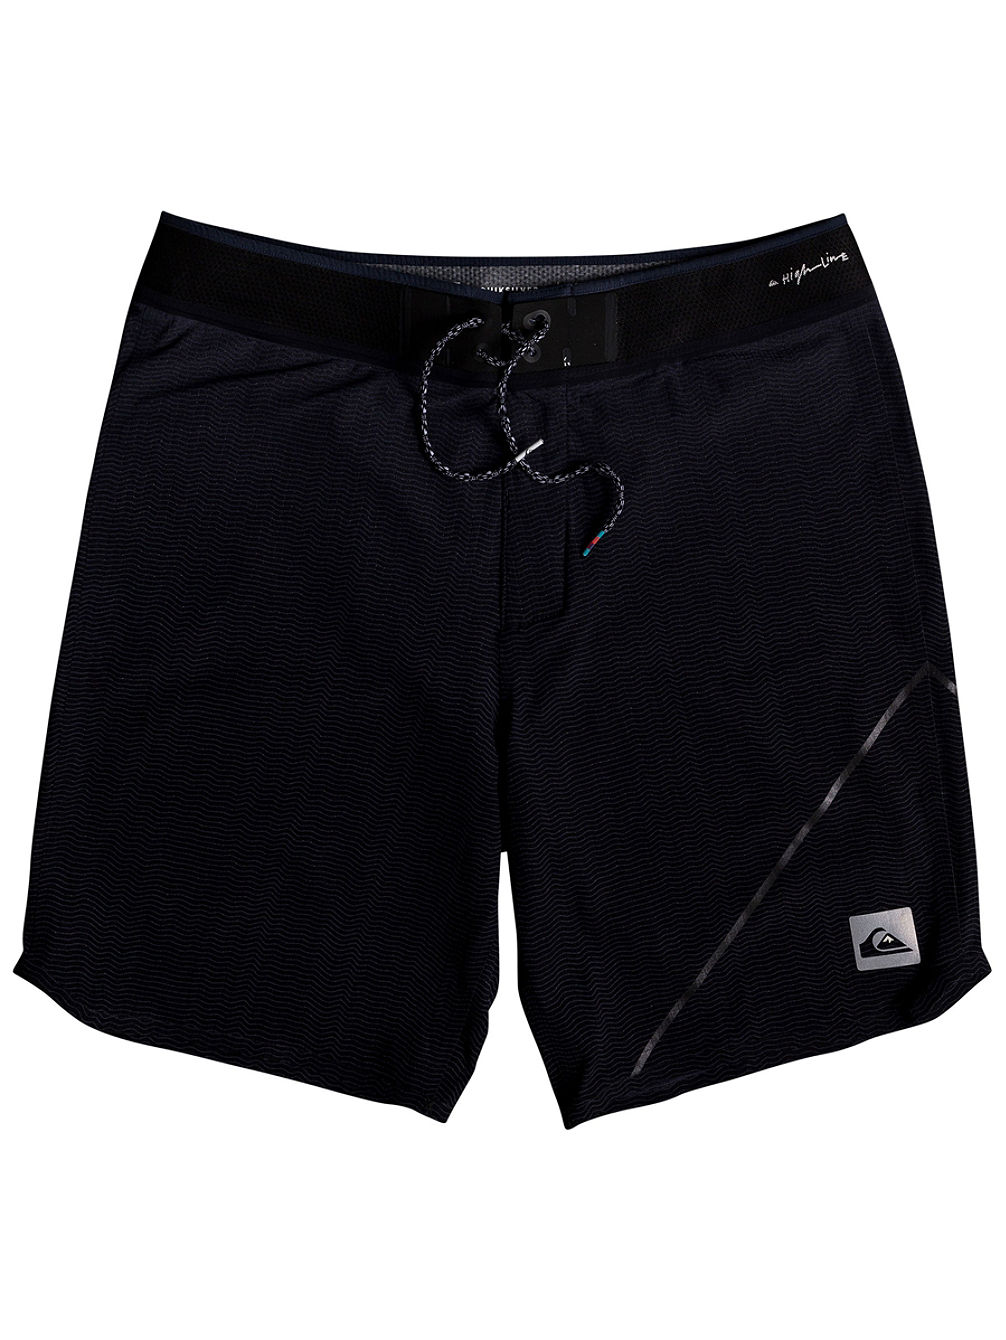 23c7371895 Buy Quiksilver Highline New Wave Pro 19